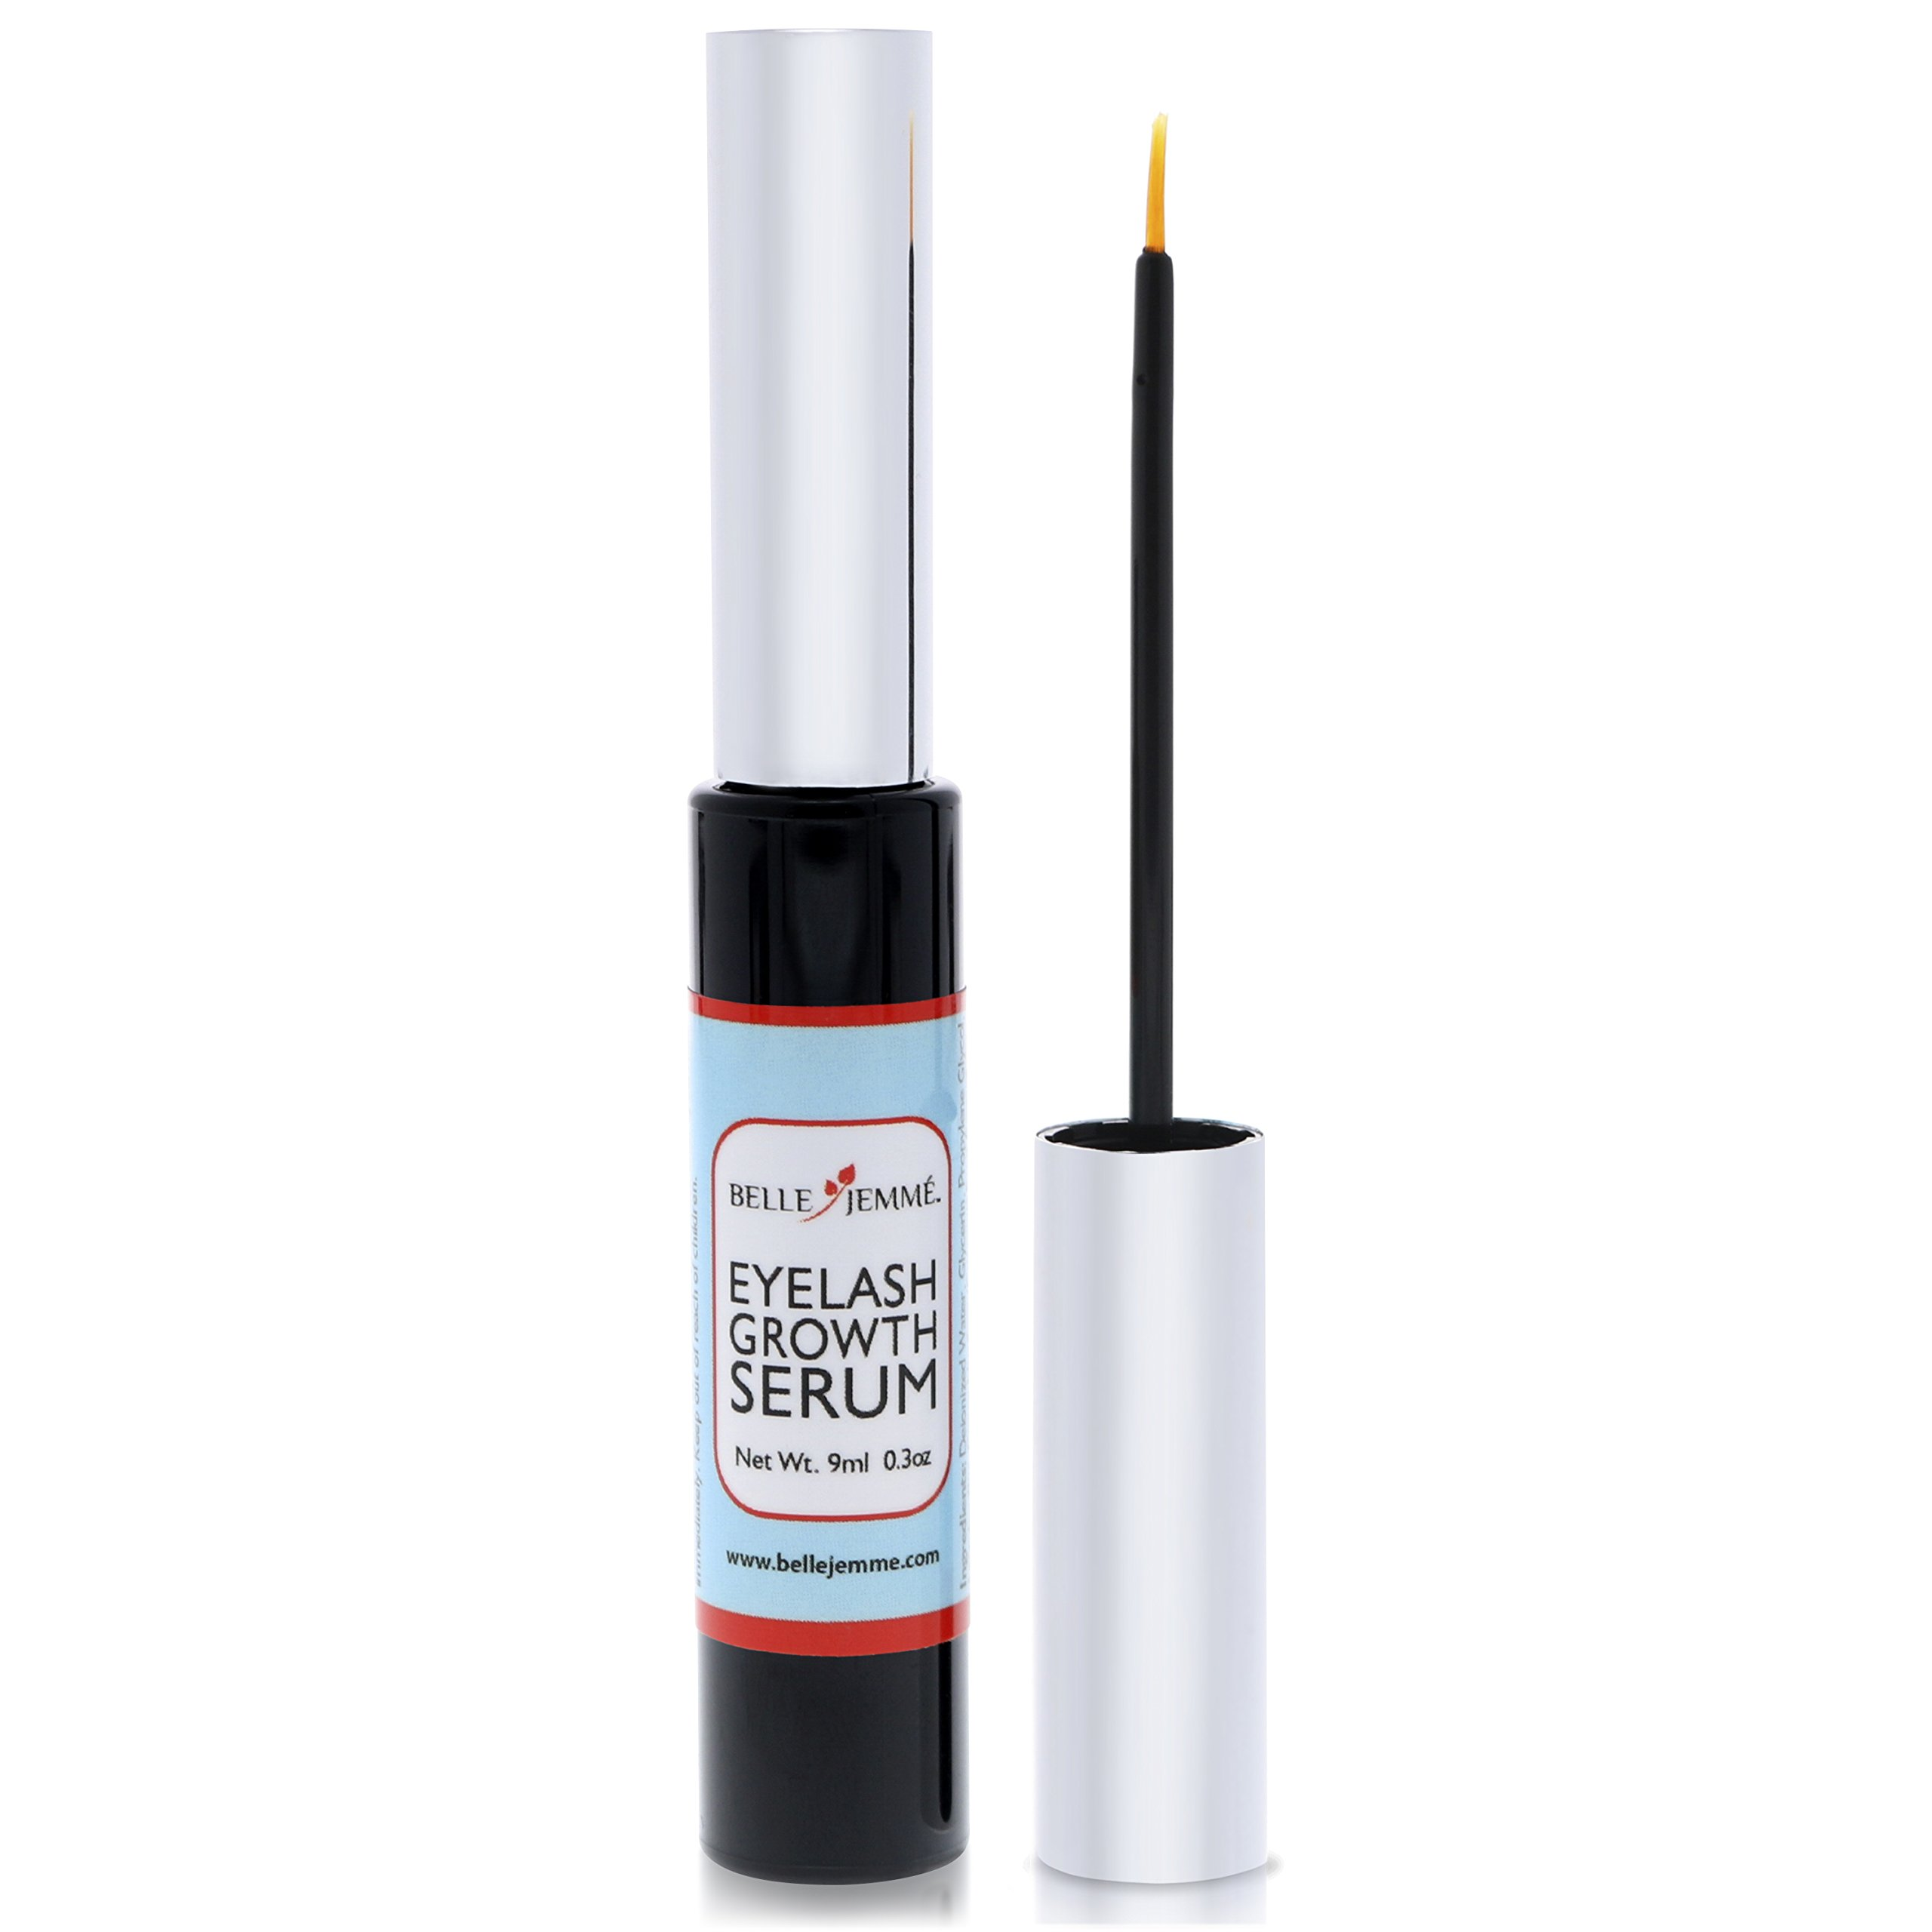 Belle Jemme Eyelash Growth Serum- Grow longer fuller eyelashes & eyebrows. New non irritating serum for safe & fast results. Easy to apply lash growth serum. Lashes and brows that are naturally yours!